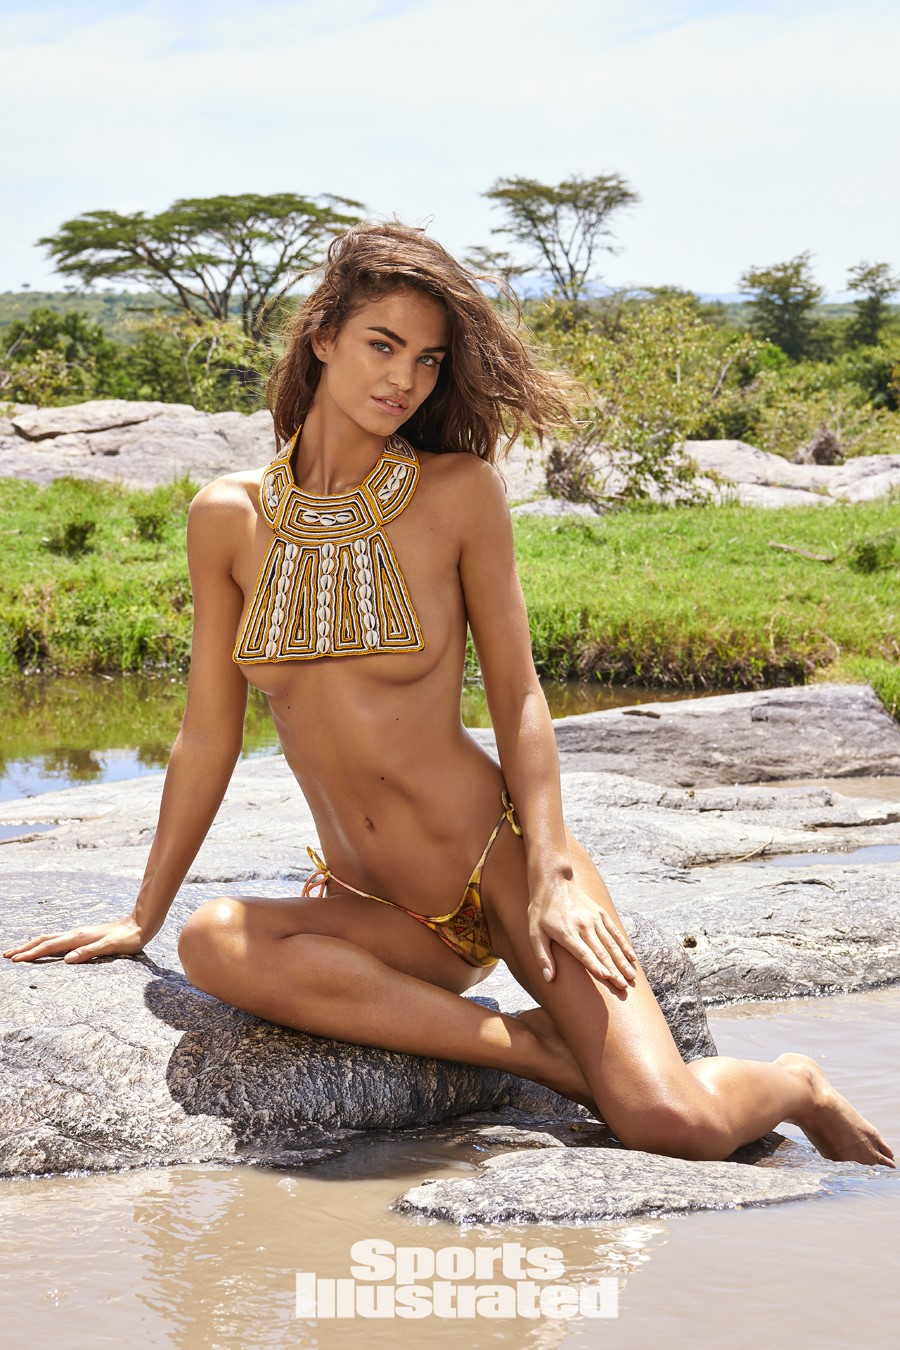 illustrated swimsuit robin sports holzken si issue edition kenya instagram celebrity yu tsai photographed ola vida through thefappening hawtcelebs pages